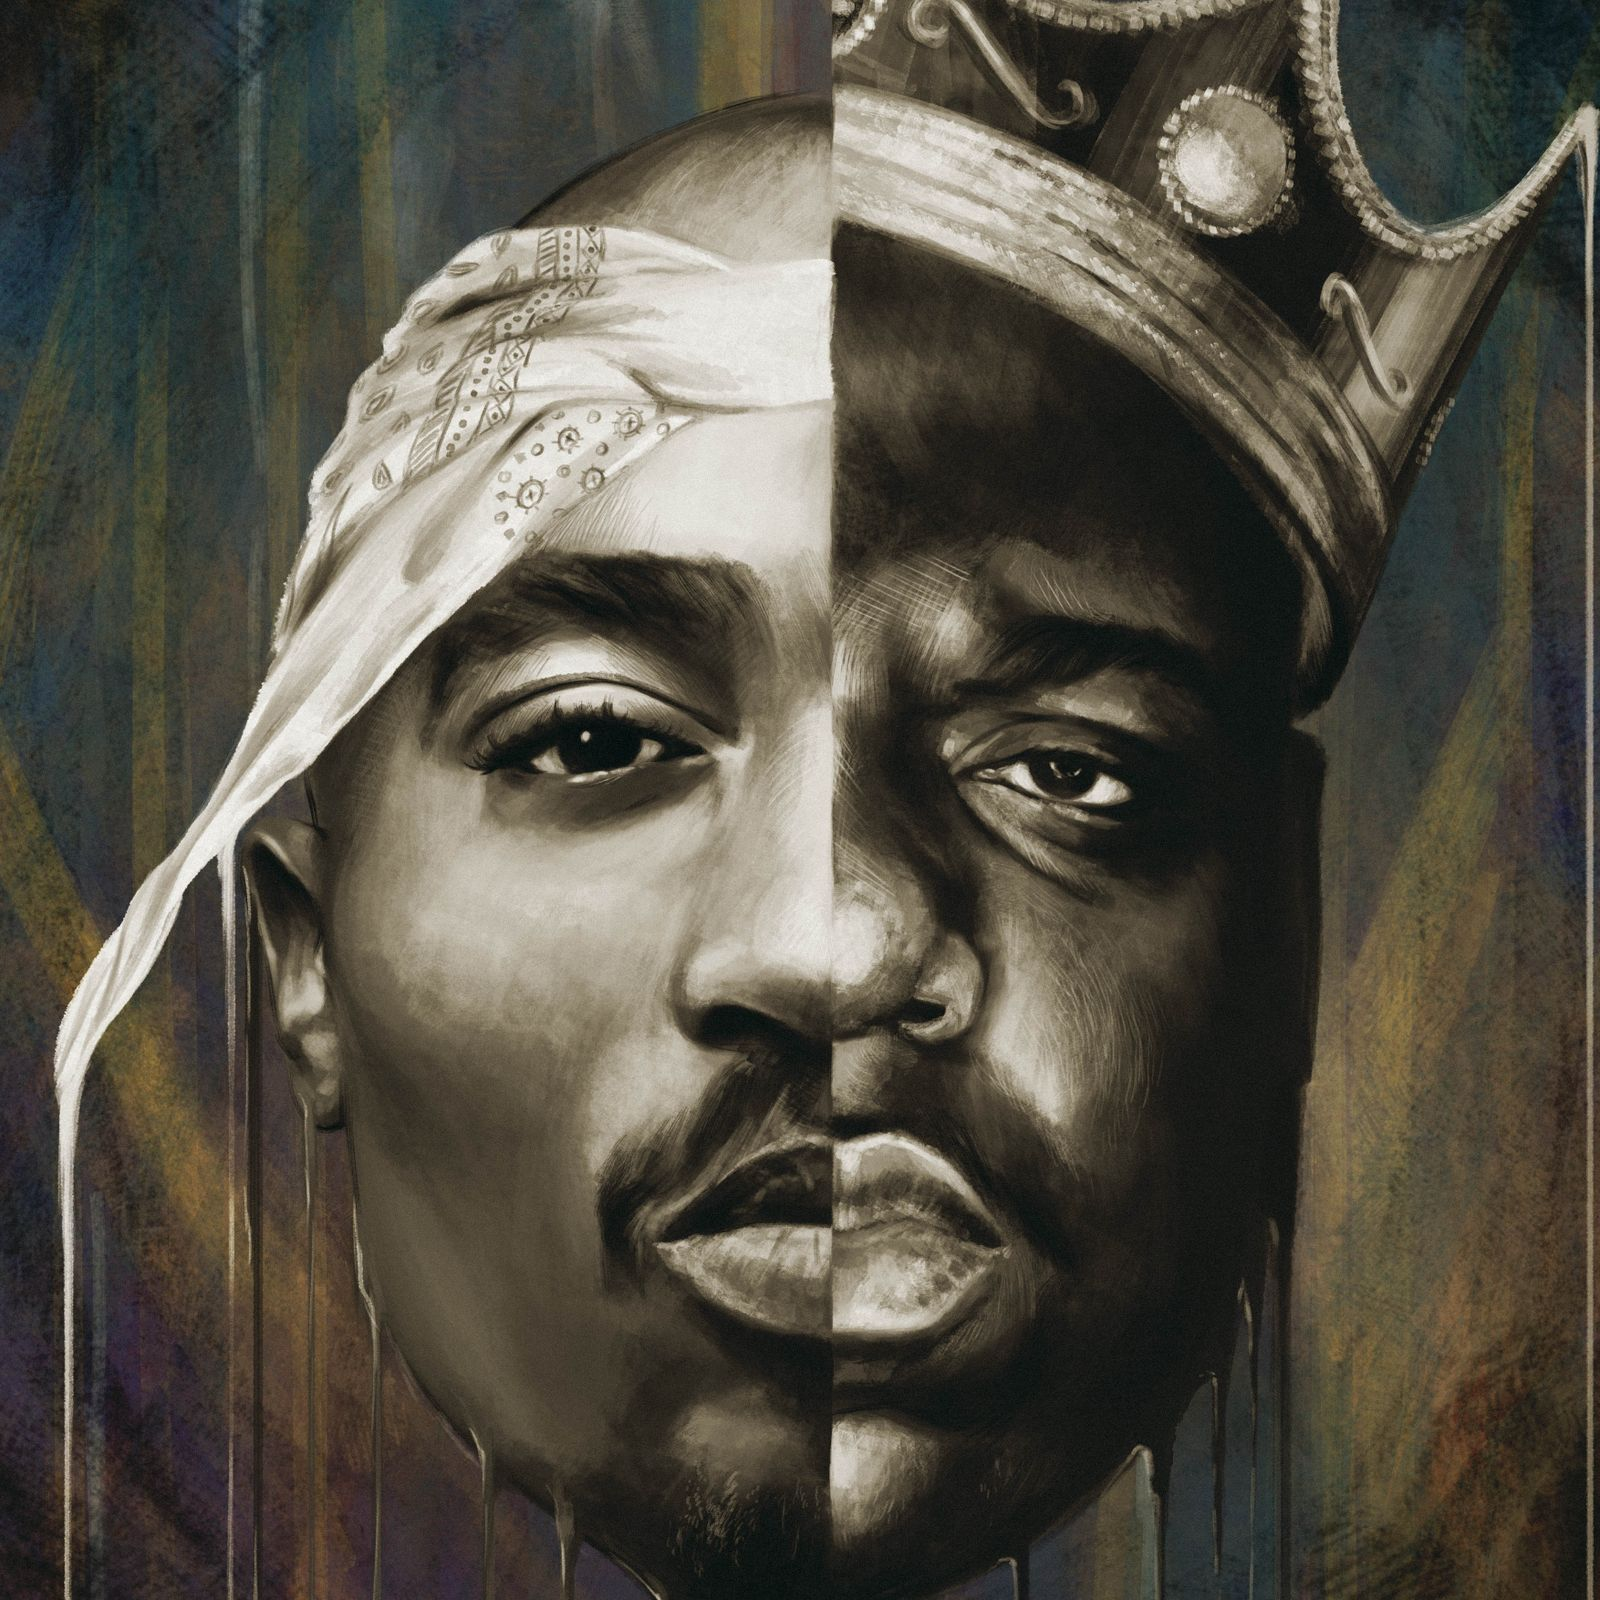 Geto Boys Scarface -Hit Em Up 2 Pac Mashup by 2 Pac from Phatmixes 2